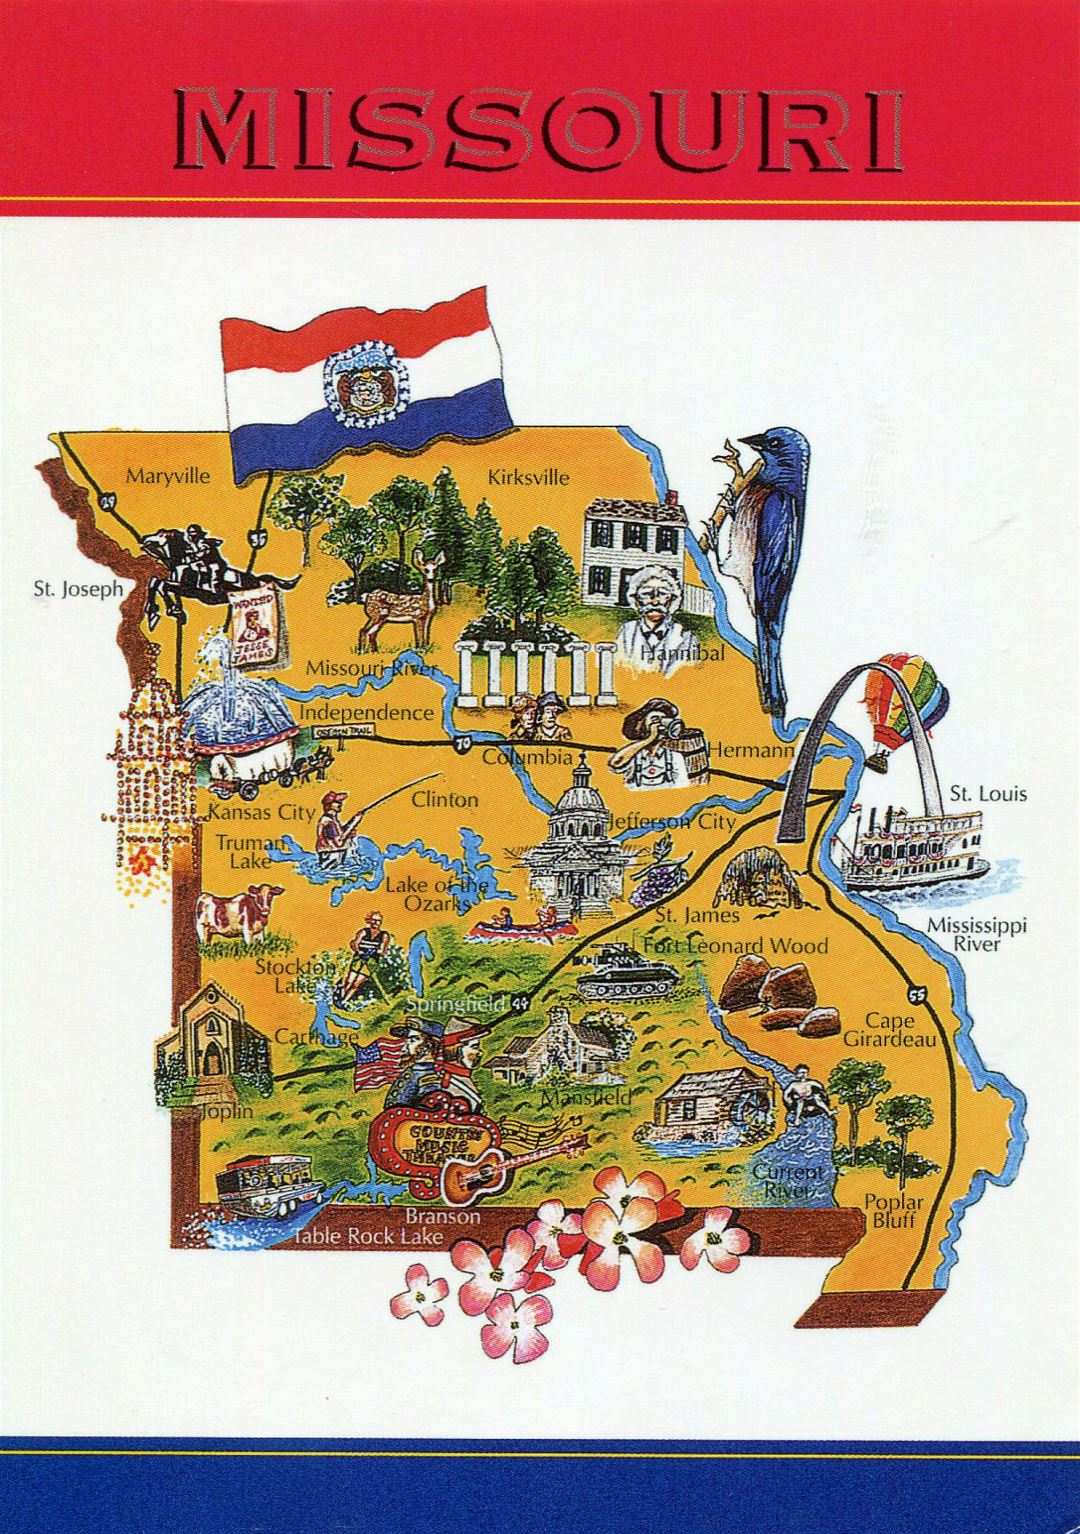 Large tourist illustrated map of Missouri state